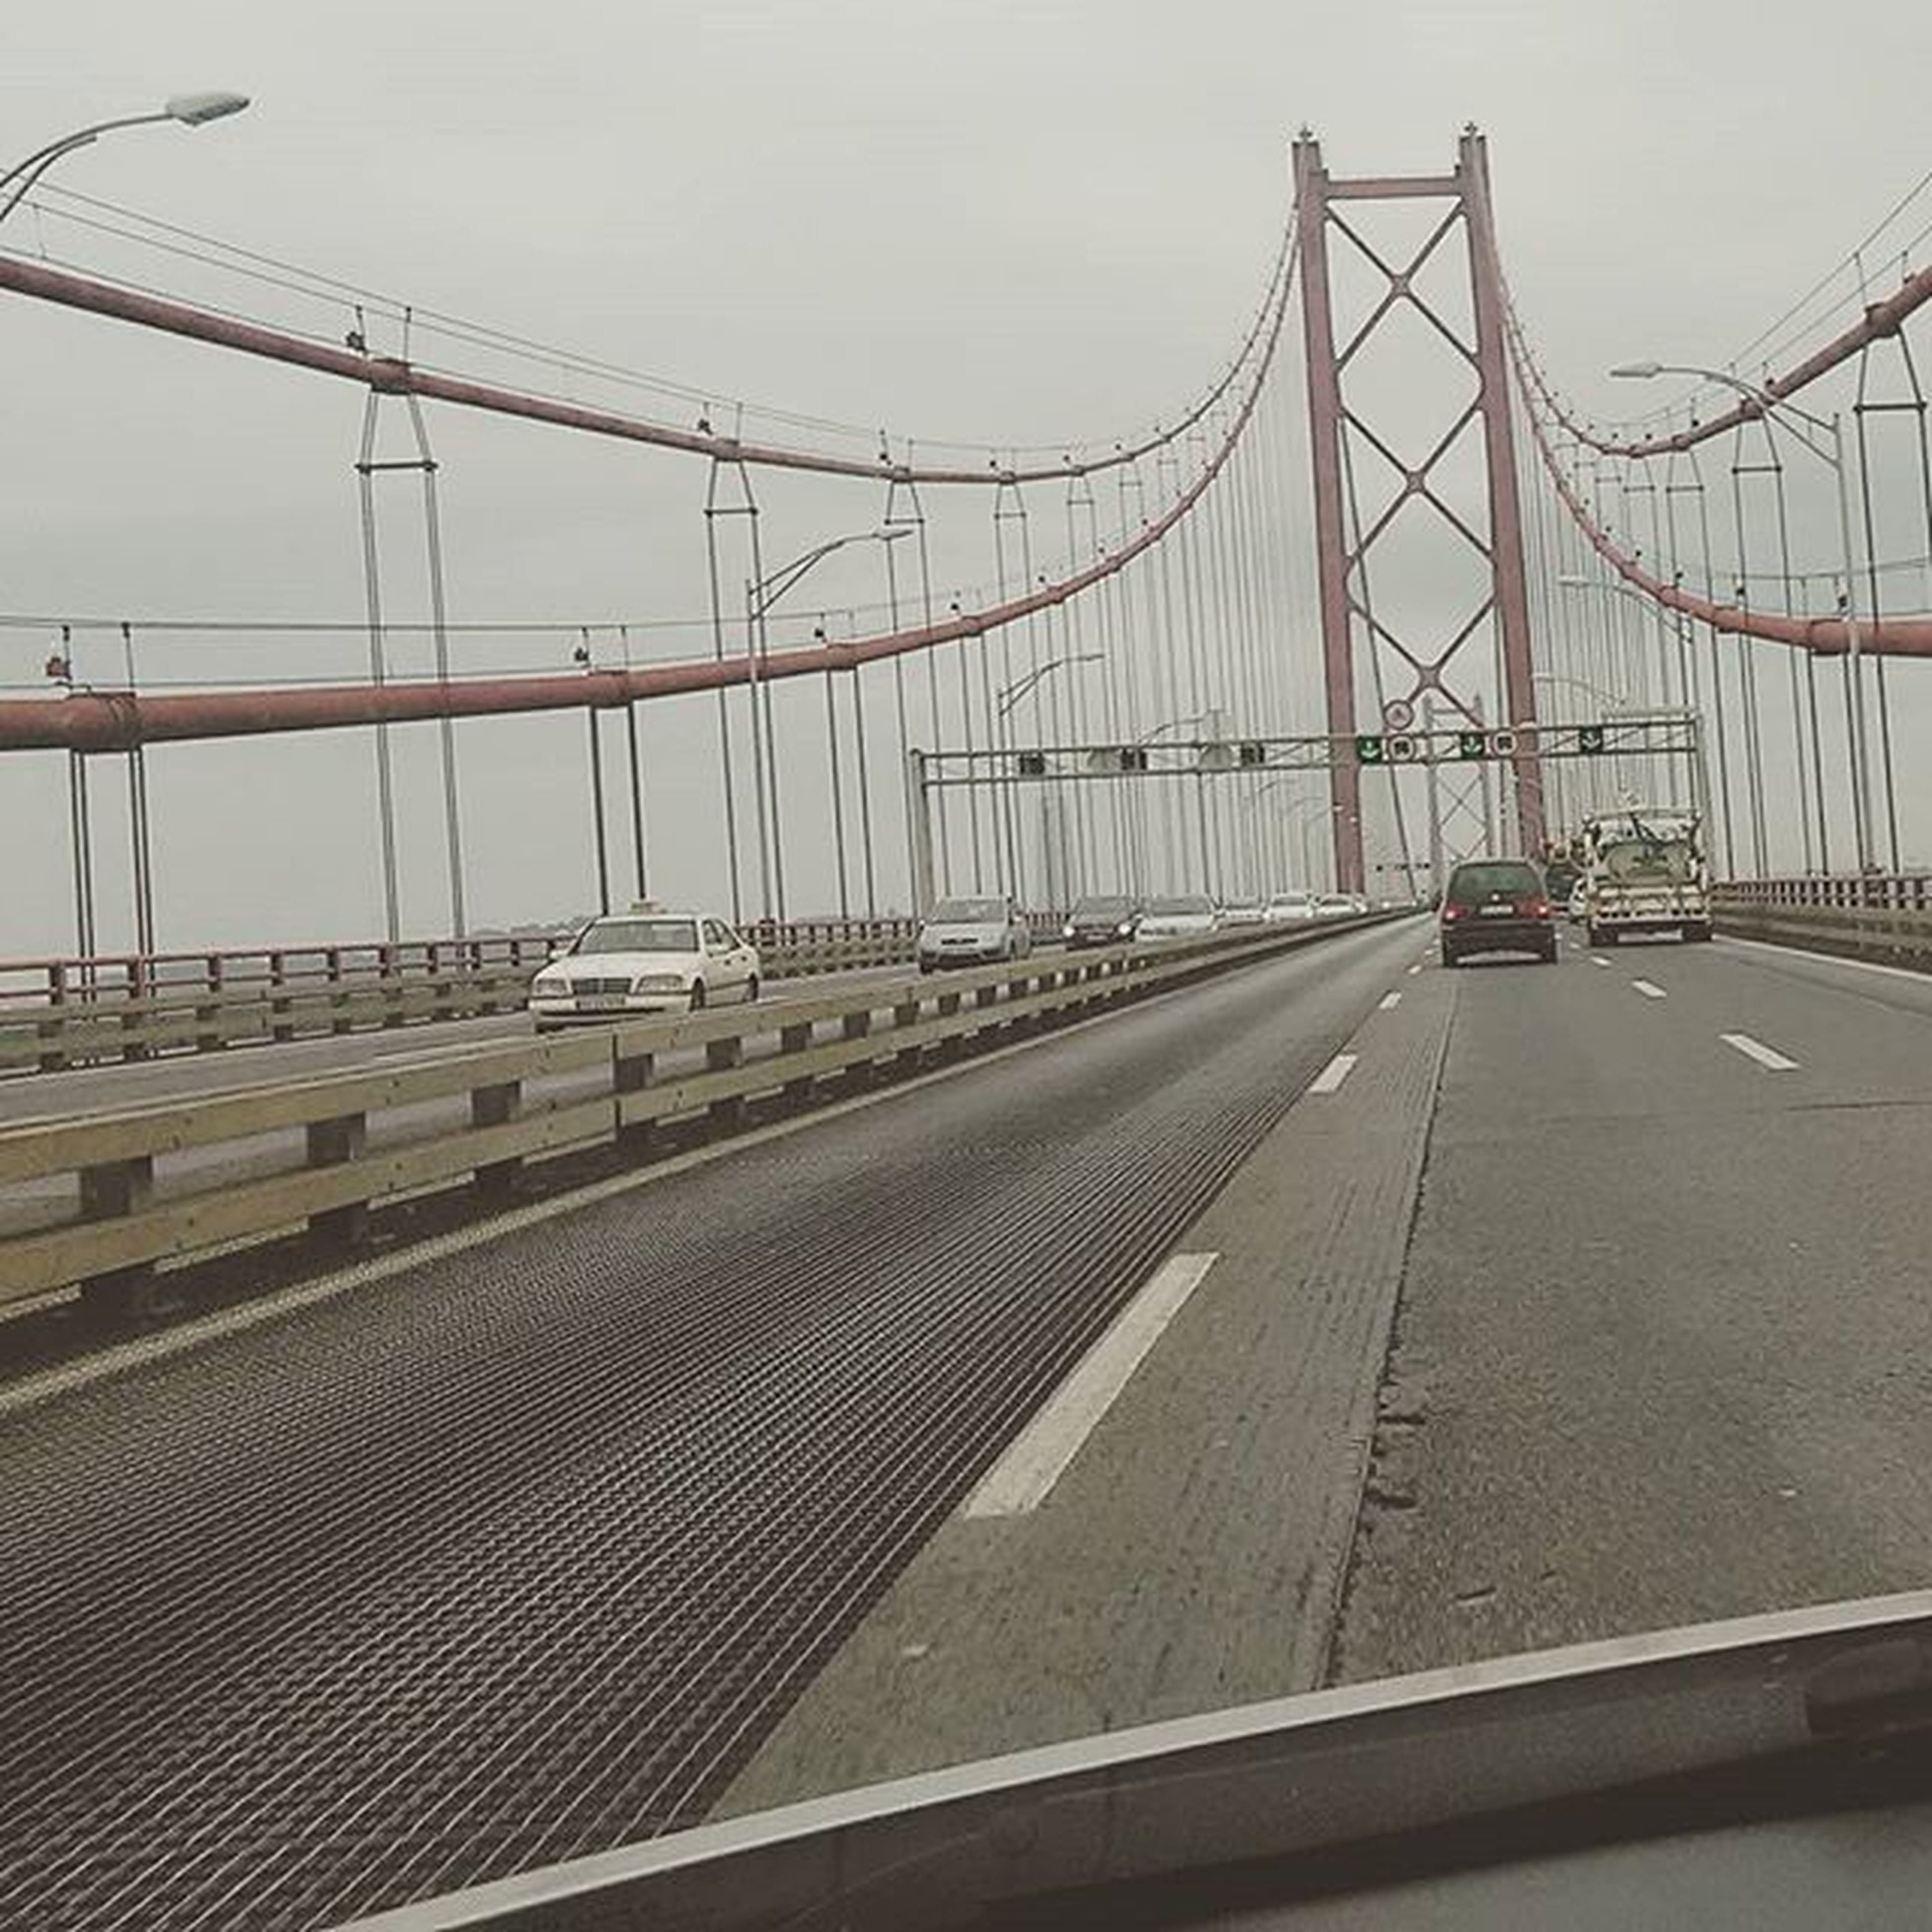 built structure, architecture, connection, transportation, bridge - man made structure, engineering, clear sky, sky, building exterior, metal, diminishing perspective, bridge, railing, city, outdoors, the way forward, day, no people, suspension bridge, road